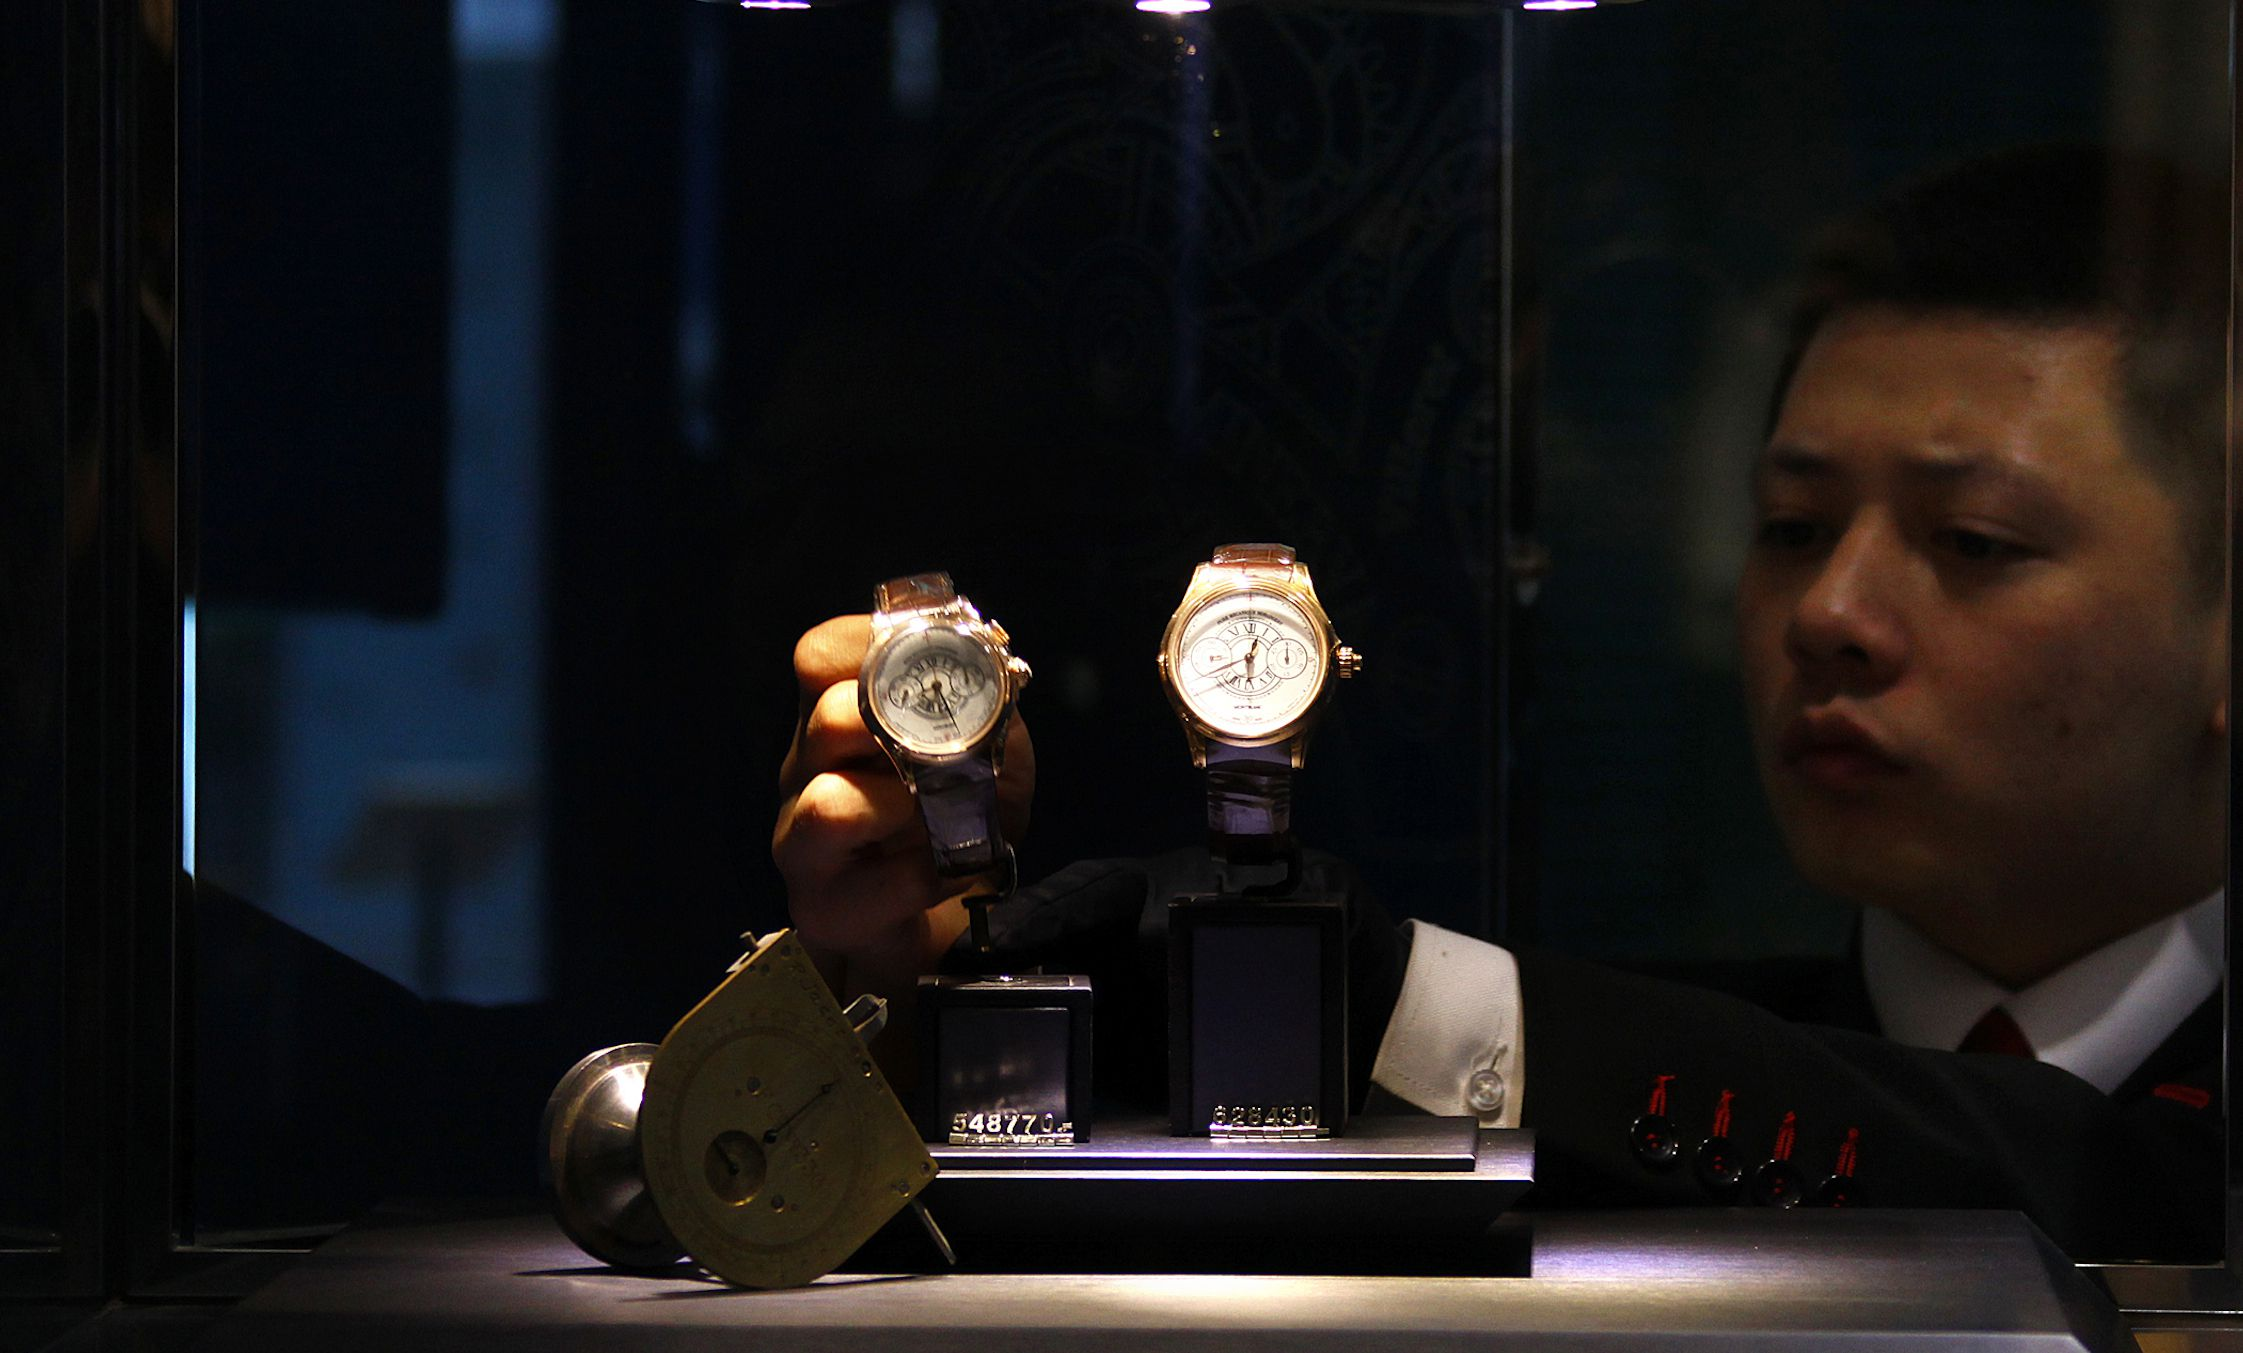 A worker adjusts a display of Mont Blanc watches at the luxury-goods company's new store in Beijing January 5, 2012. High-end penmaker Montblanc has opened its largest store in China to capitalise on the surging growth of Chinese luxury-goods consumers, who are expected to account for most of the world's luxury purchases in eight years. The four-storey store is in a recently developed area of Beijing's trendy Sanlitun district - which includes Armani, Longchamp, Rolex and other luxury boutiques - and is meant to appeal to China's growing middle class who are increasingly obsessed with the latest and most exclusive fashions after decades in which the Communist Party frowned on fancy clothes, accessories and make-up. Picture taken January 5, 2012.      REUTERS/David Gray (CHINA - Tags: BUSINESS EMPLOYMENT SOCIETY) - RTR2WCUG